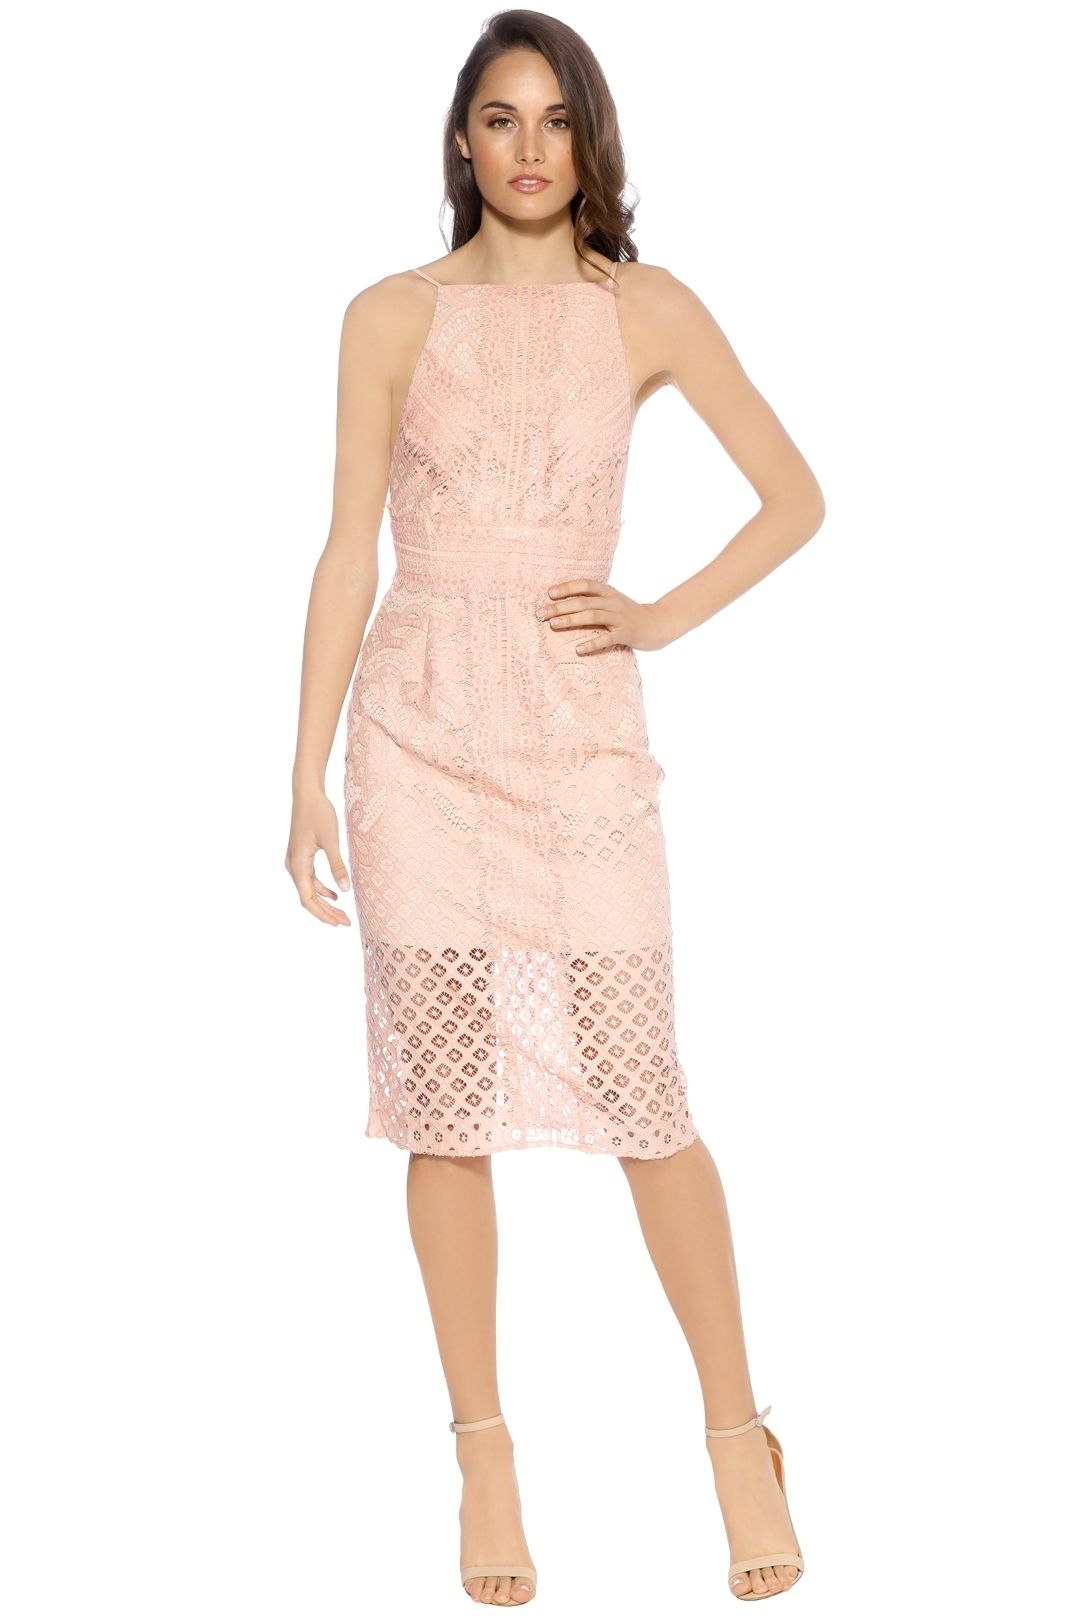 Keepsake The Label - Bridges Lace Midi Dress - Blush - Front